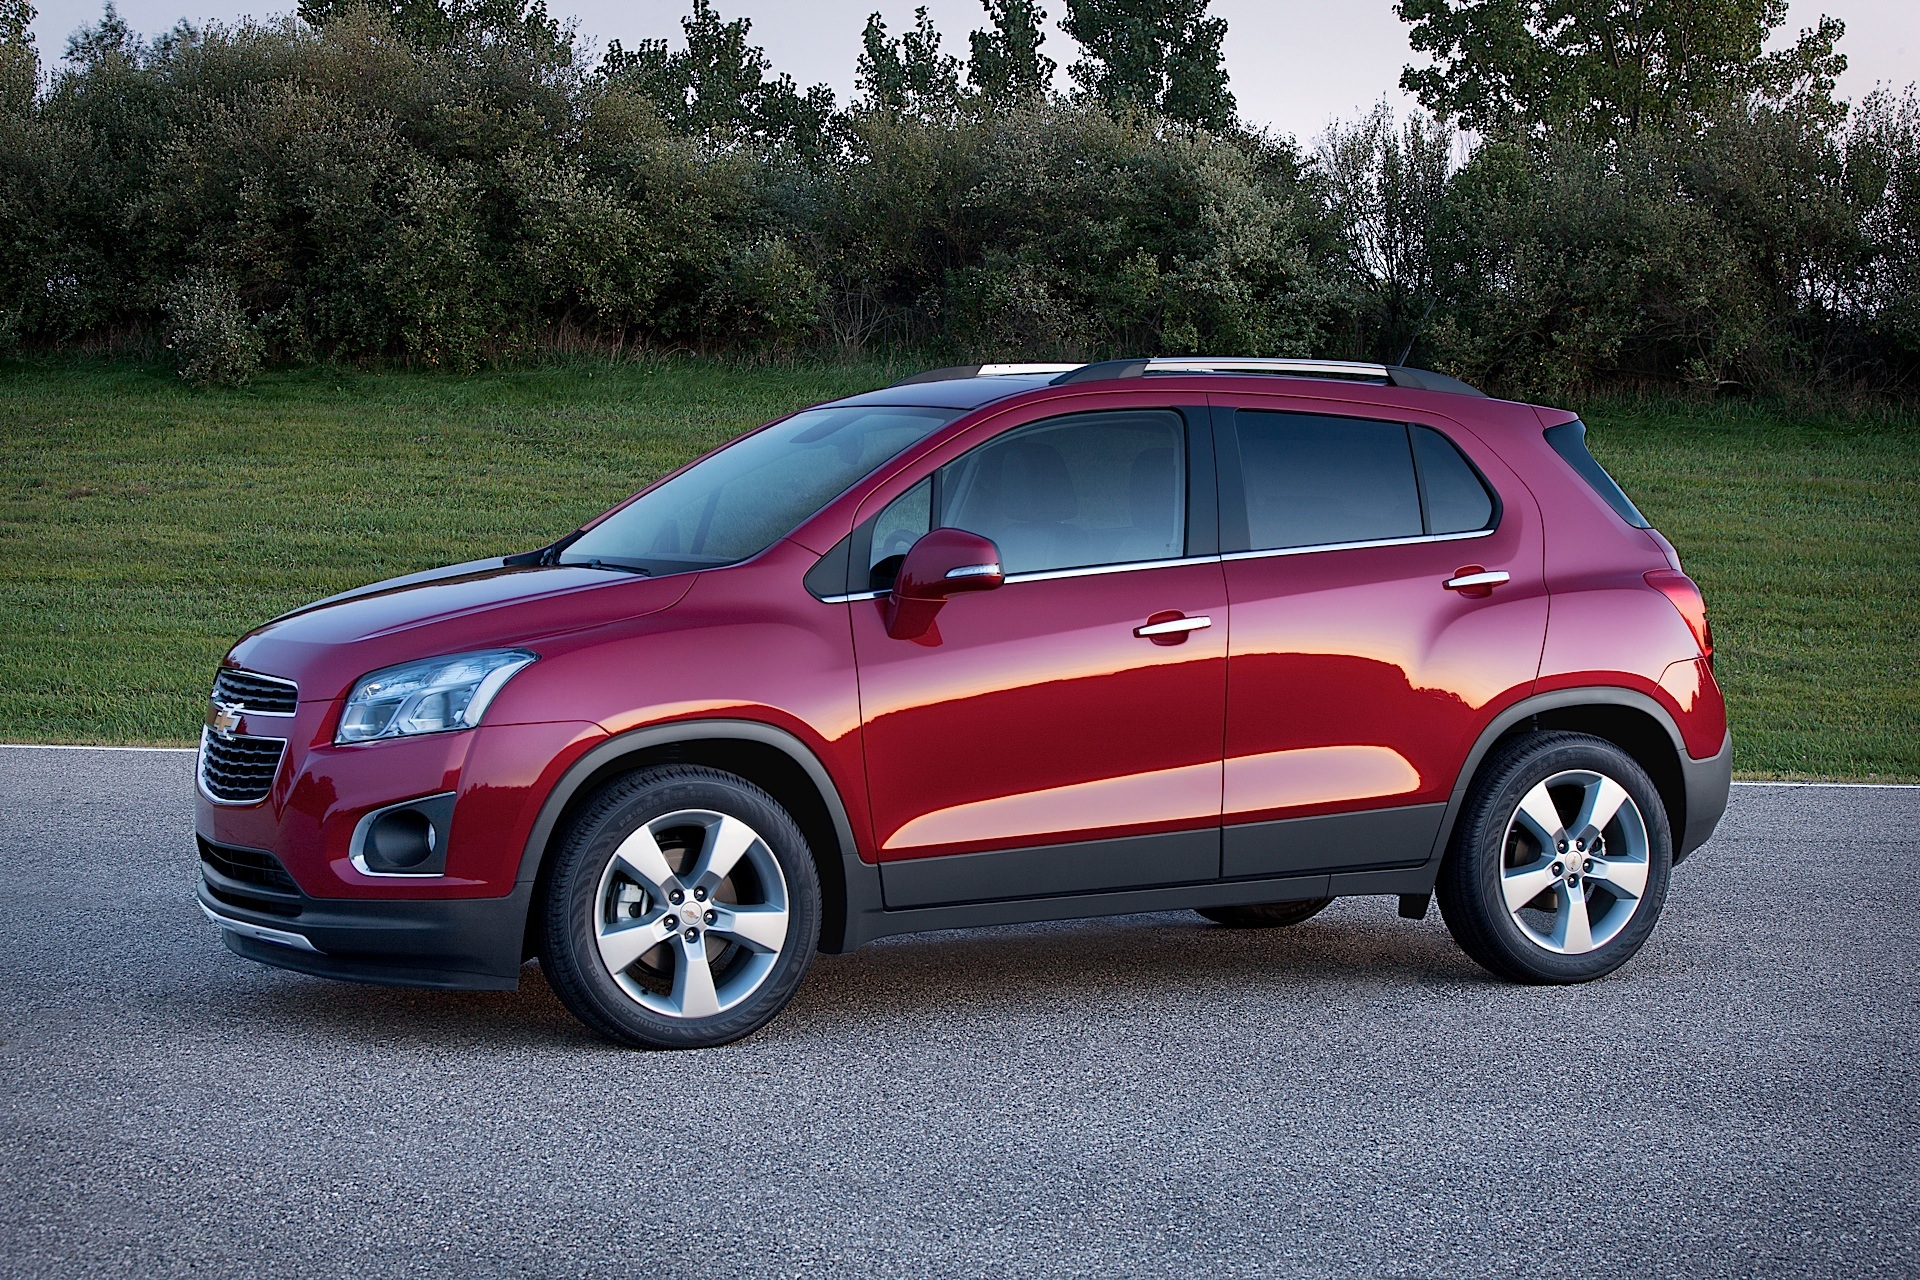 CHEVROLET Trax Photo Gallery #15/28